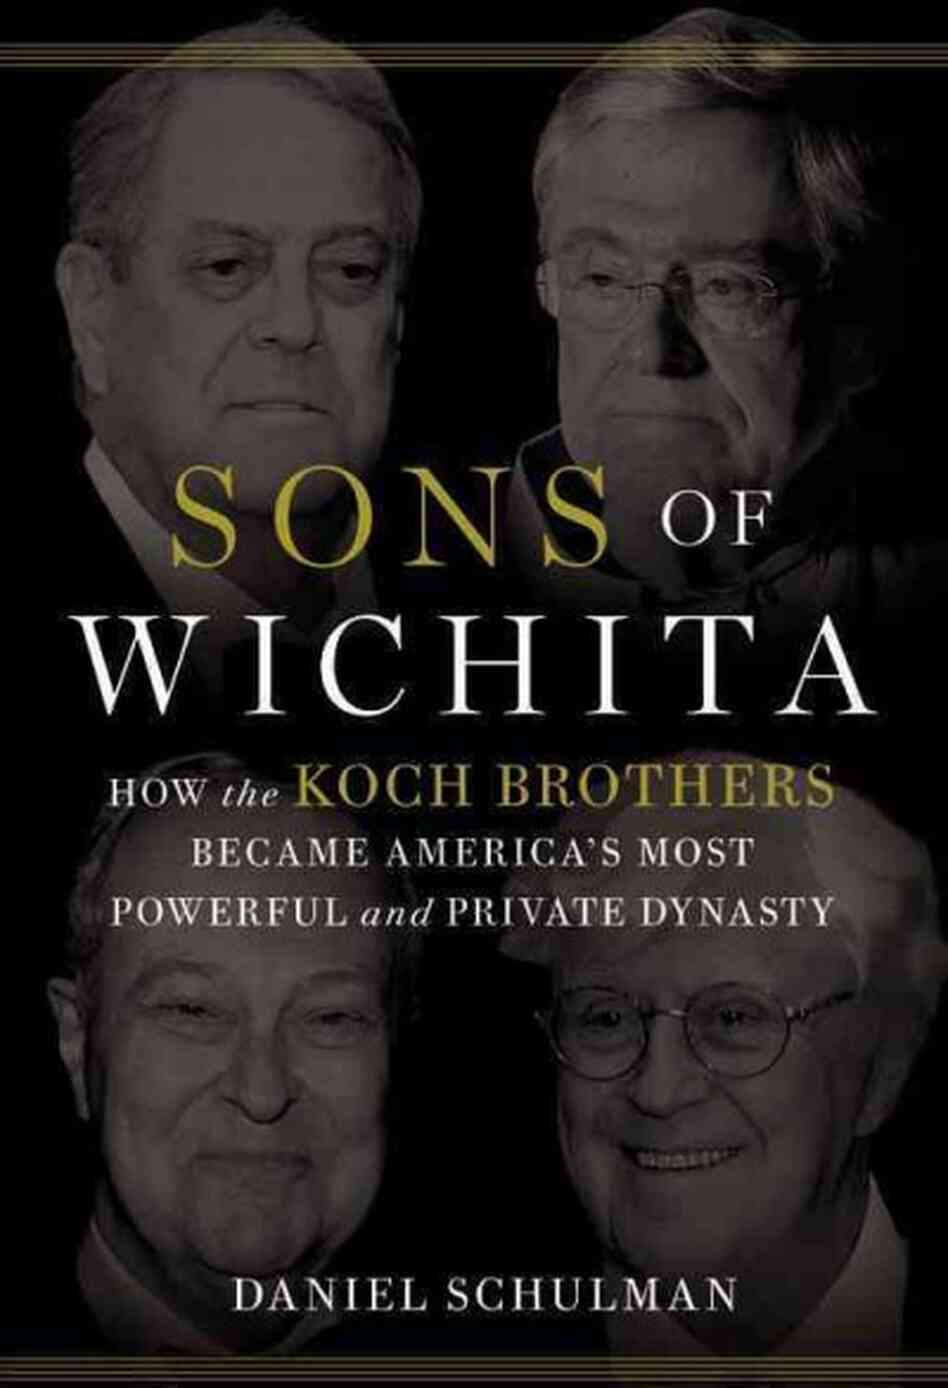 Schulman – Sons of Wichita: How the Koch Brothers Became America's Most Powerful and Private Dynasty